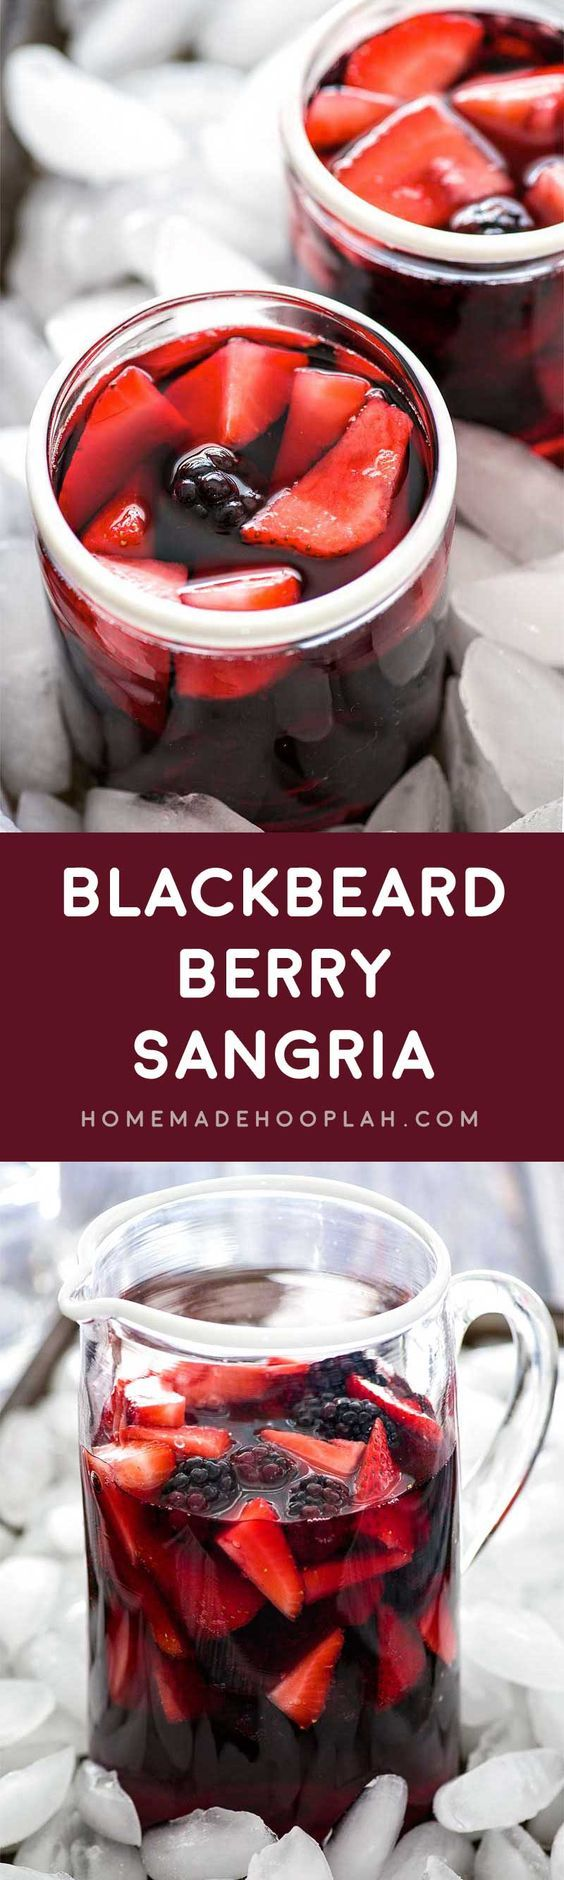 Blackbeard Berry Sangria! Blackberries and strawberries come together with a sweet red wine and a kick of Absinthe to make this very berry sangria!   HomemadeHooplah.com